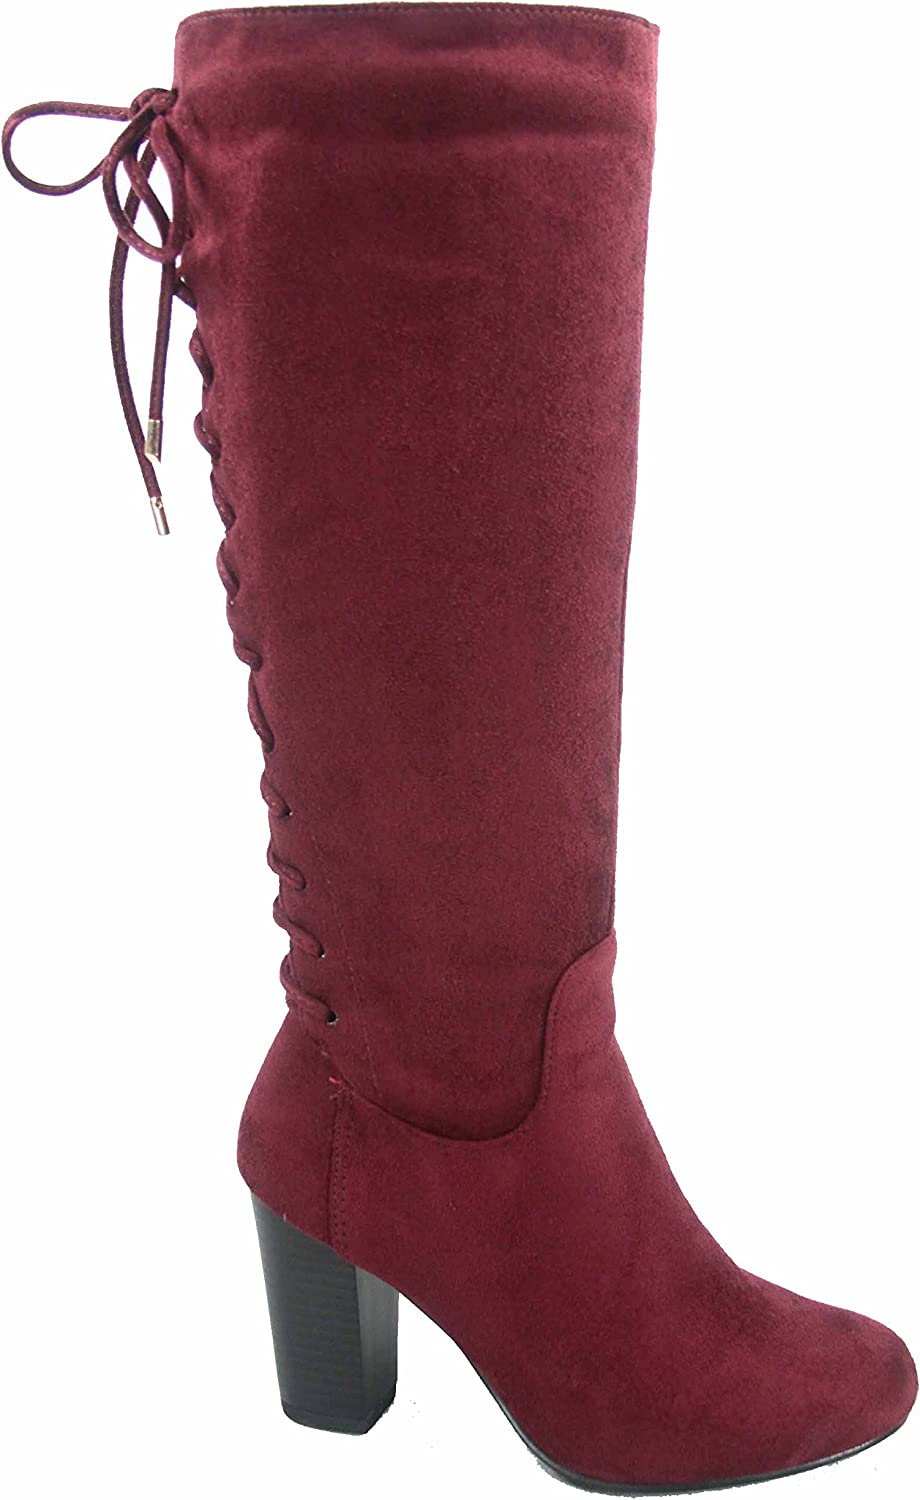 Top Moda Sophie-30 Women's Back Lace Up Chunky Heel Zipper Mid-Calf Boots shoes